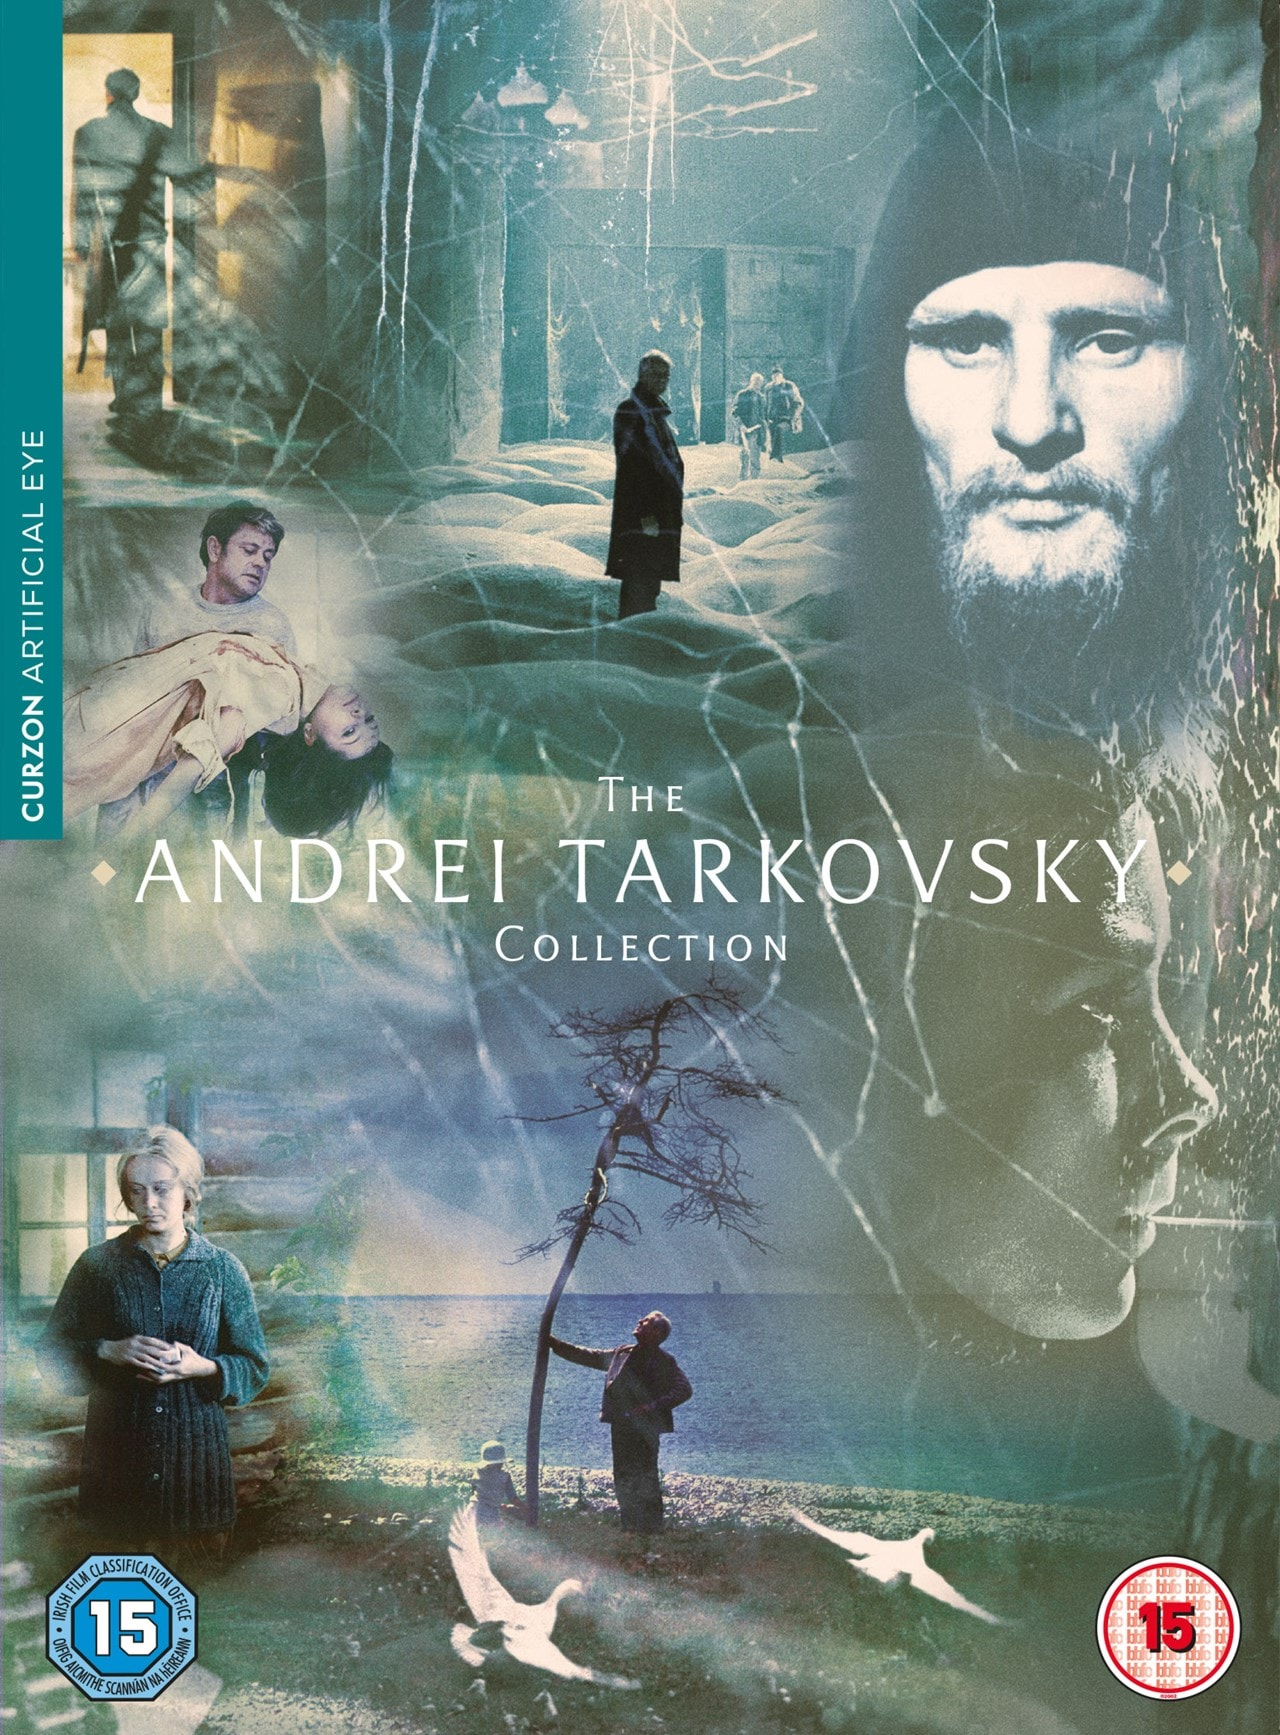 The Andrei Tarkovsky Collection - 1